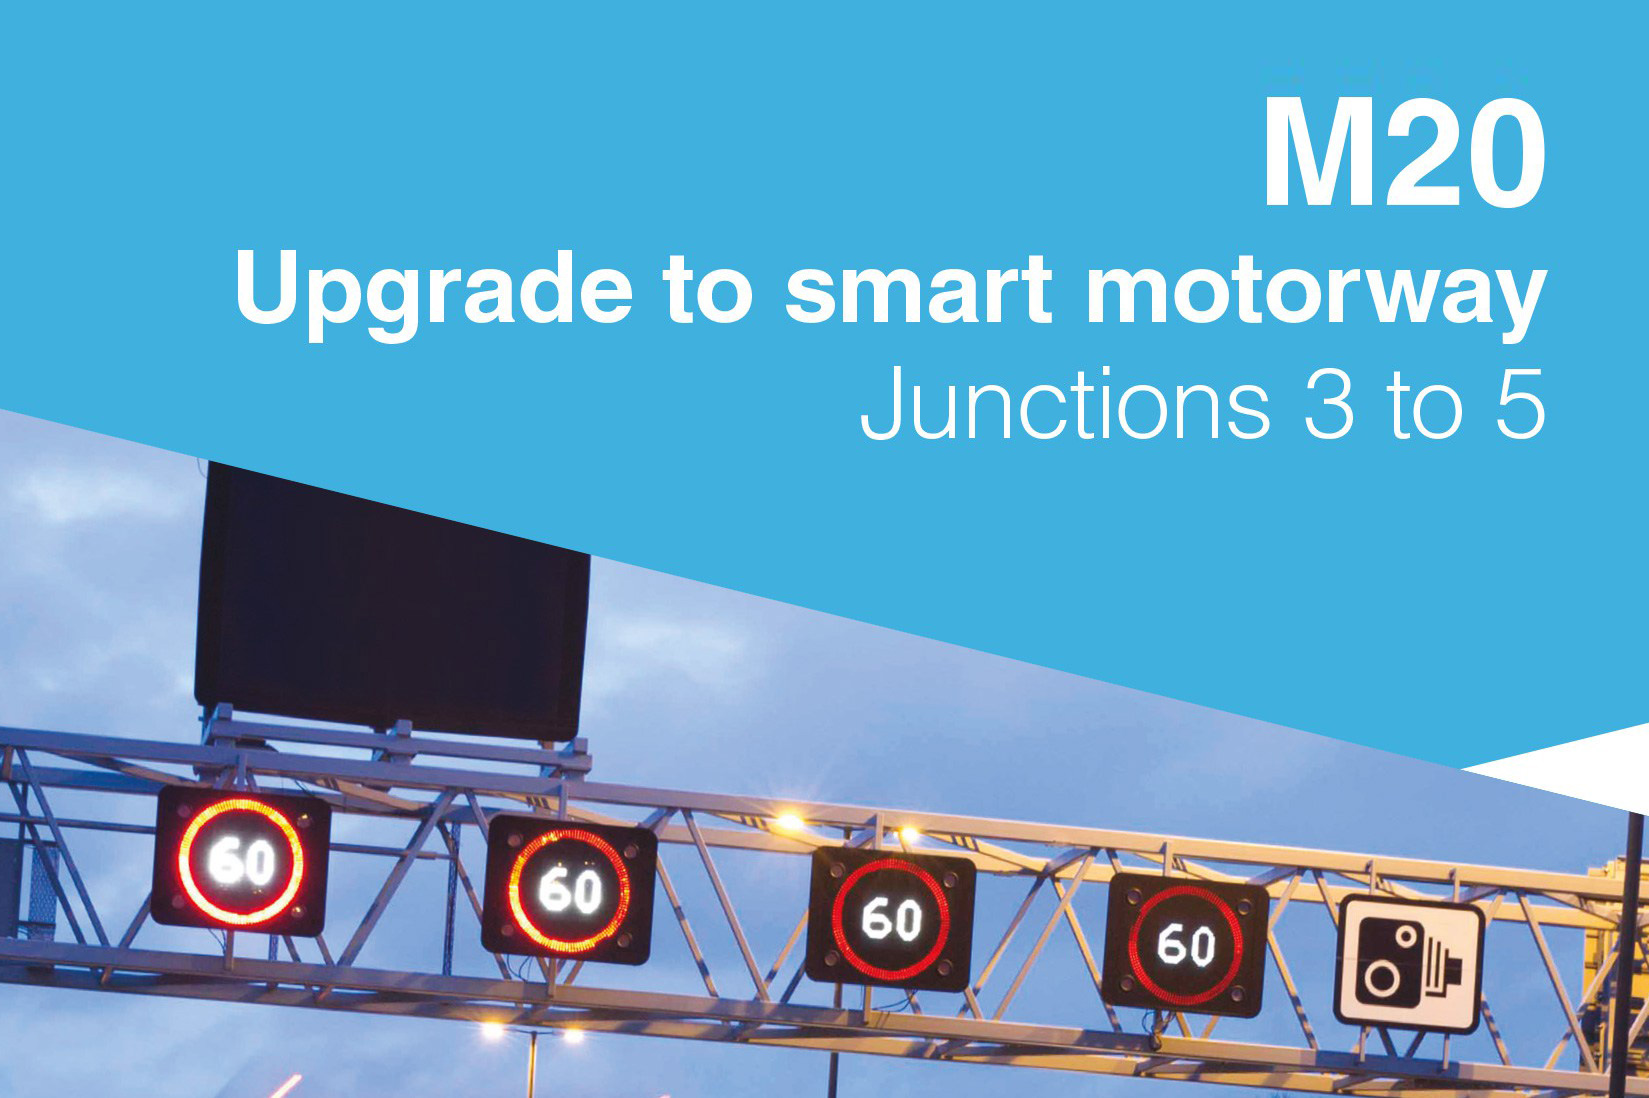 Upgrade to smart motorway - M20